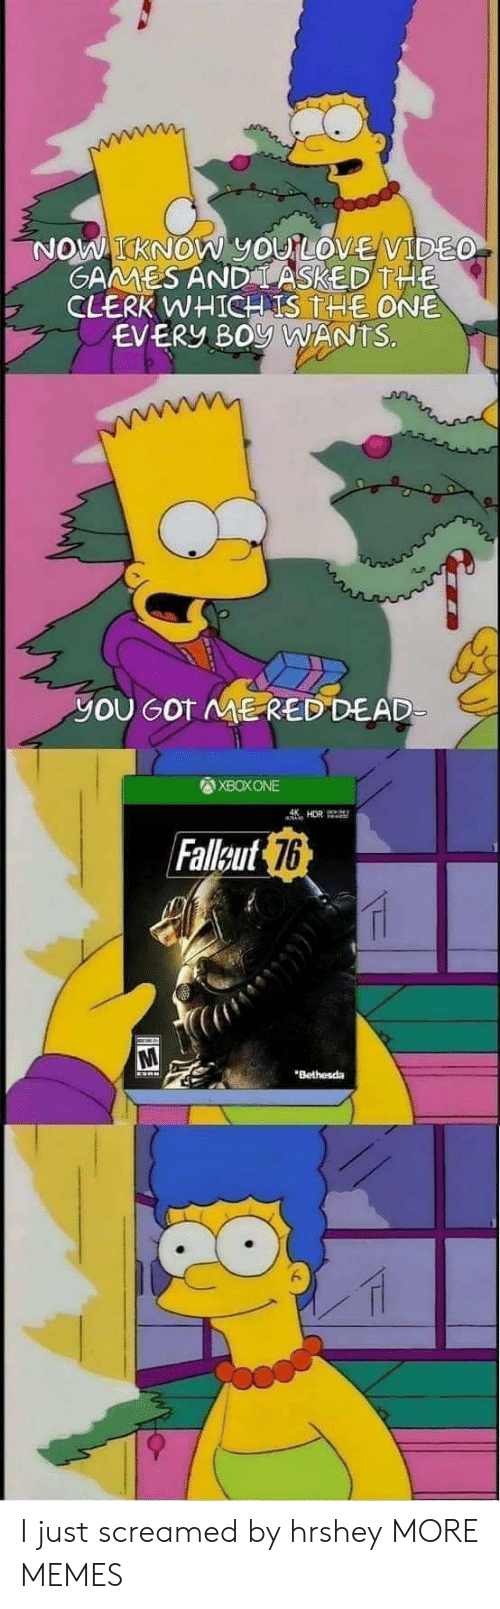 red dead: KNOW yOU LOVE VIDE  GAMMESAND LASKED THE  CLERK WHICH IS THE ONE  EVERY BOy WANTS.  yOU GOT ME RED DEAD  XBOXONE  Falleut  76  Bethesda I just screamed by hrshey MORE MEMES